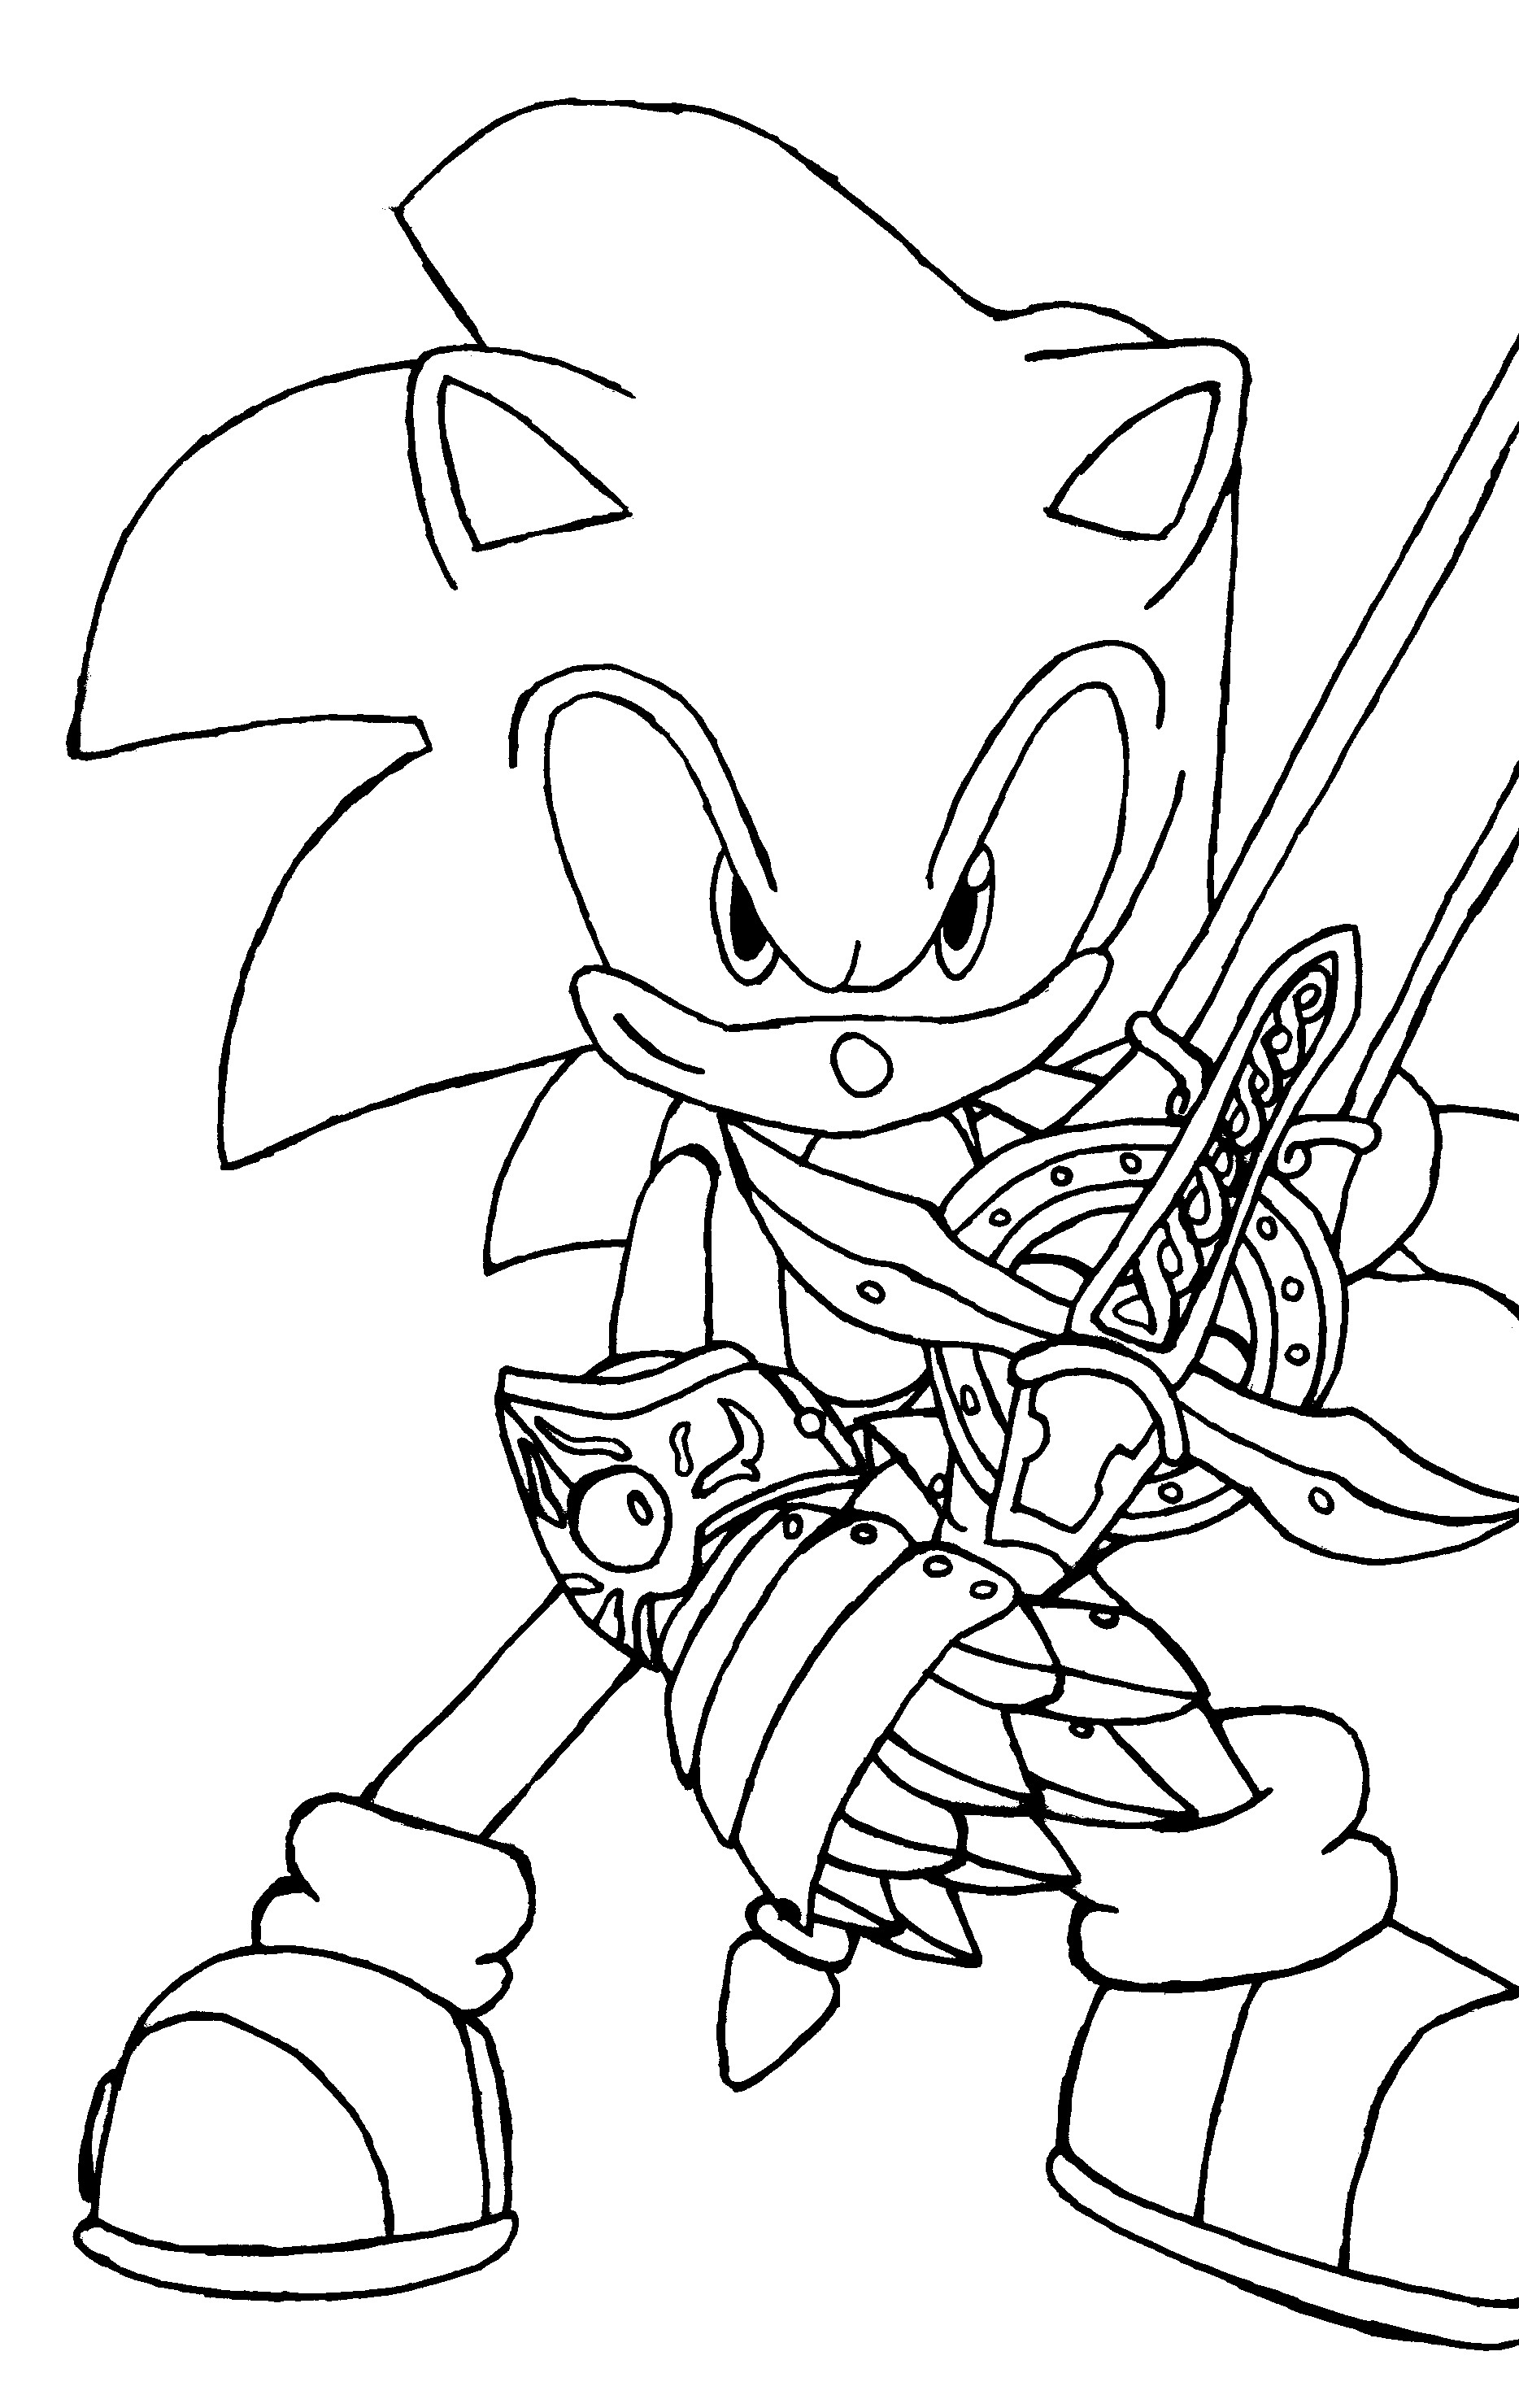 Free printable sonic the hedgehog coloring pages for kids for Free sonic the hedgehog coloring pages